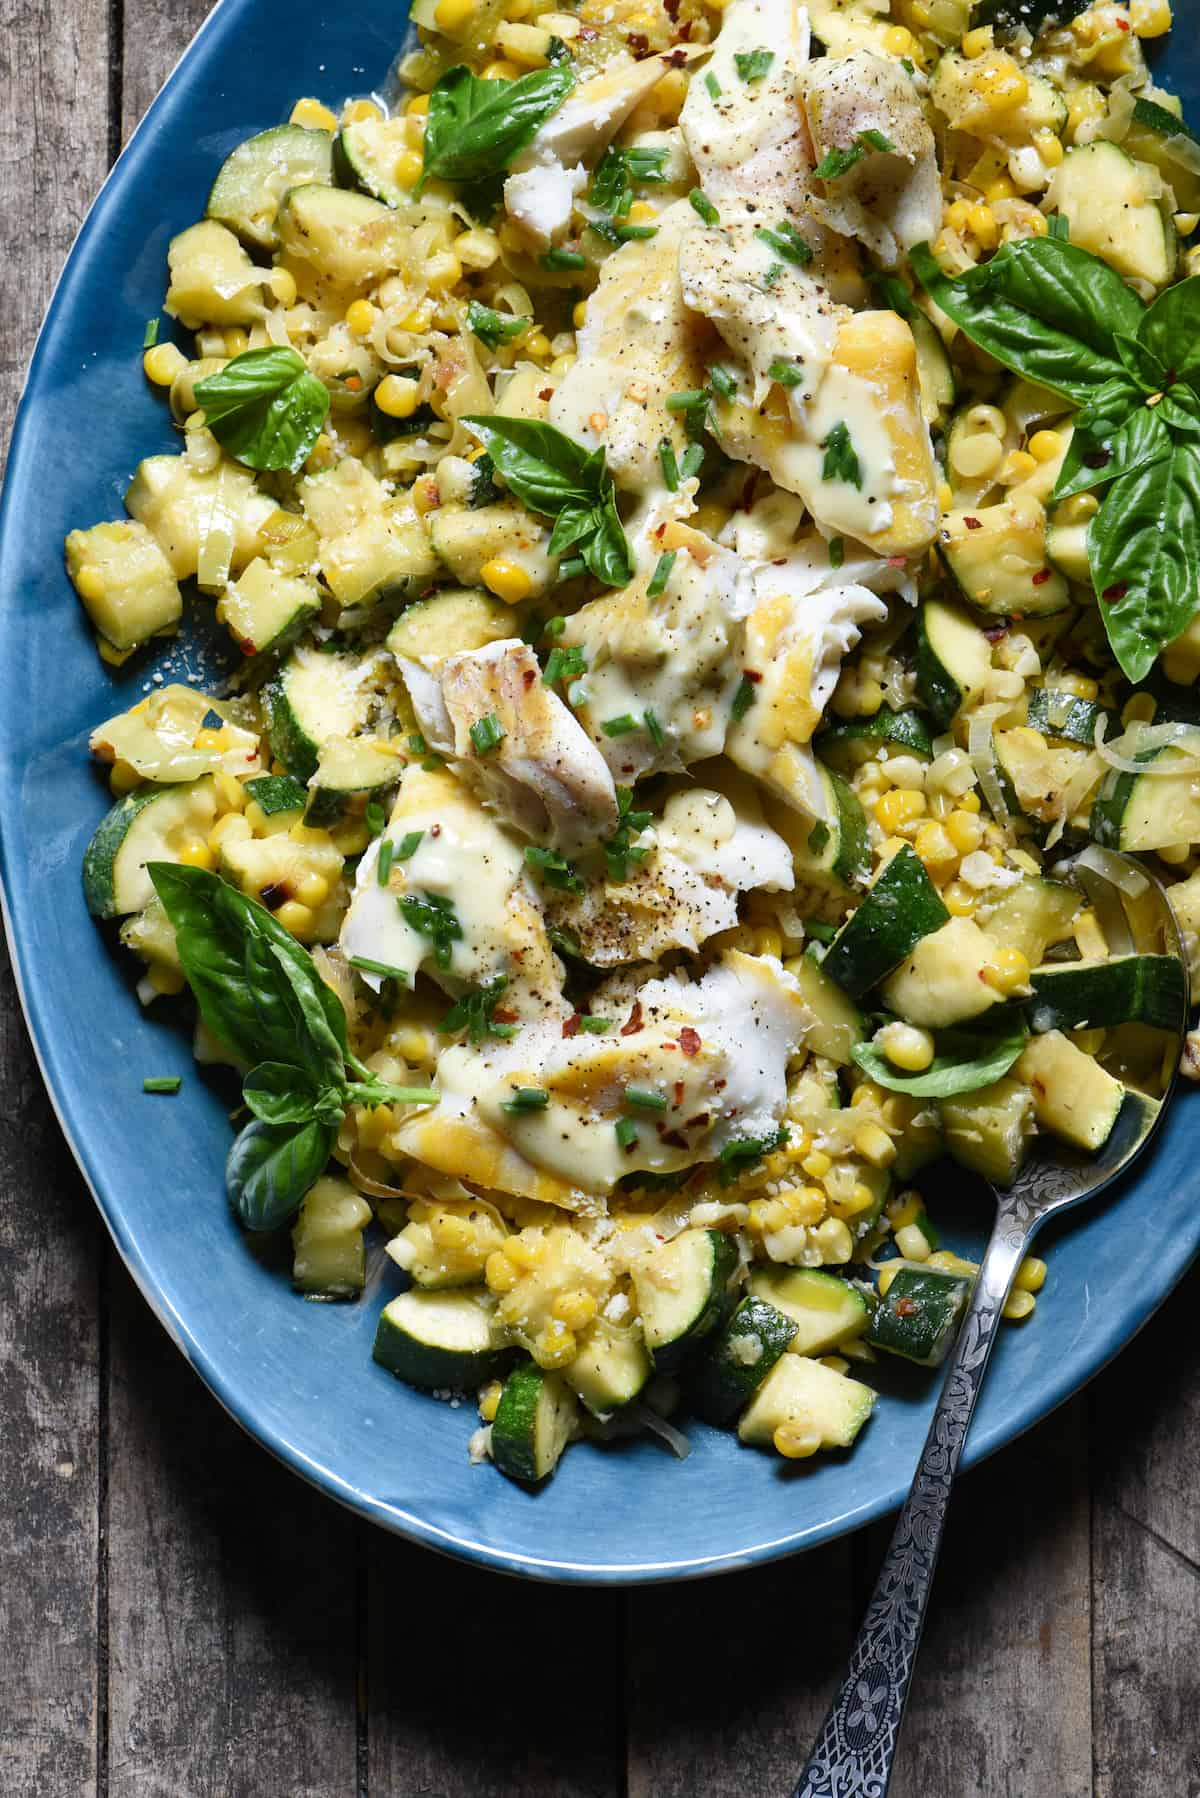 Summer is served on a platter in this Parmesan Corn & Zucchini Sauté with Haddock recipe. Learn how to make a fast, easy vegetable sauté that you'll come back to again and again all summer long. Top it with fish or your favorite protein to make it a complete meal! | foxeslovelemons.com